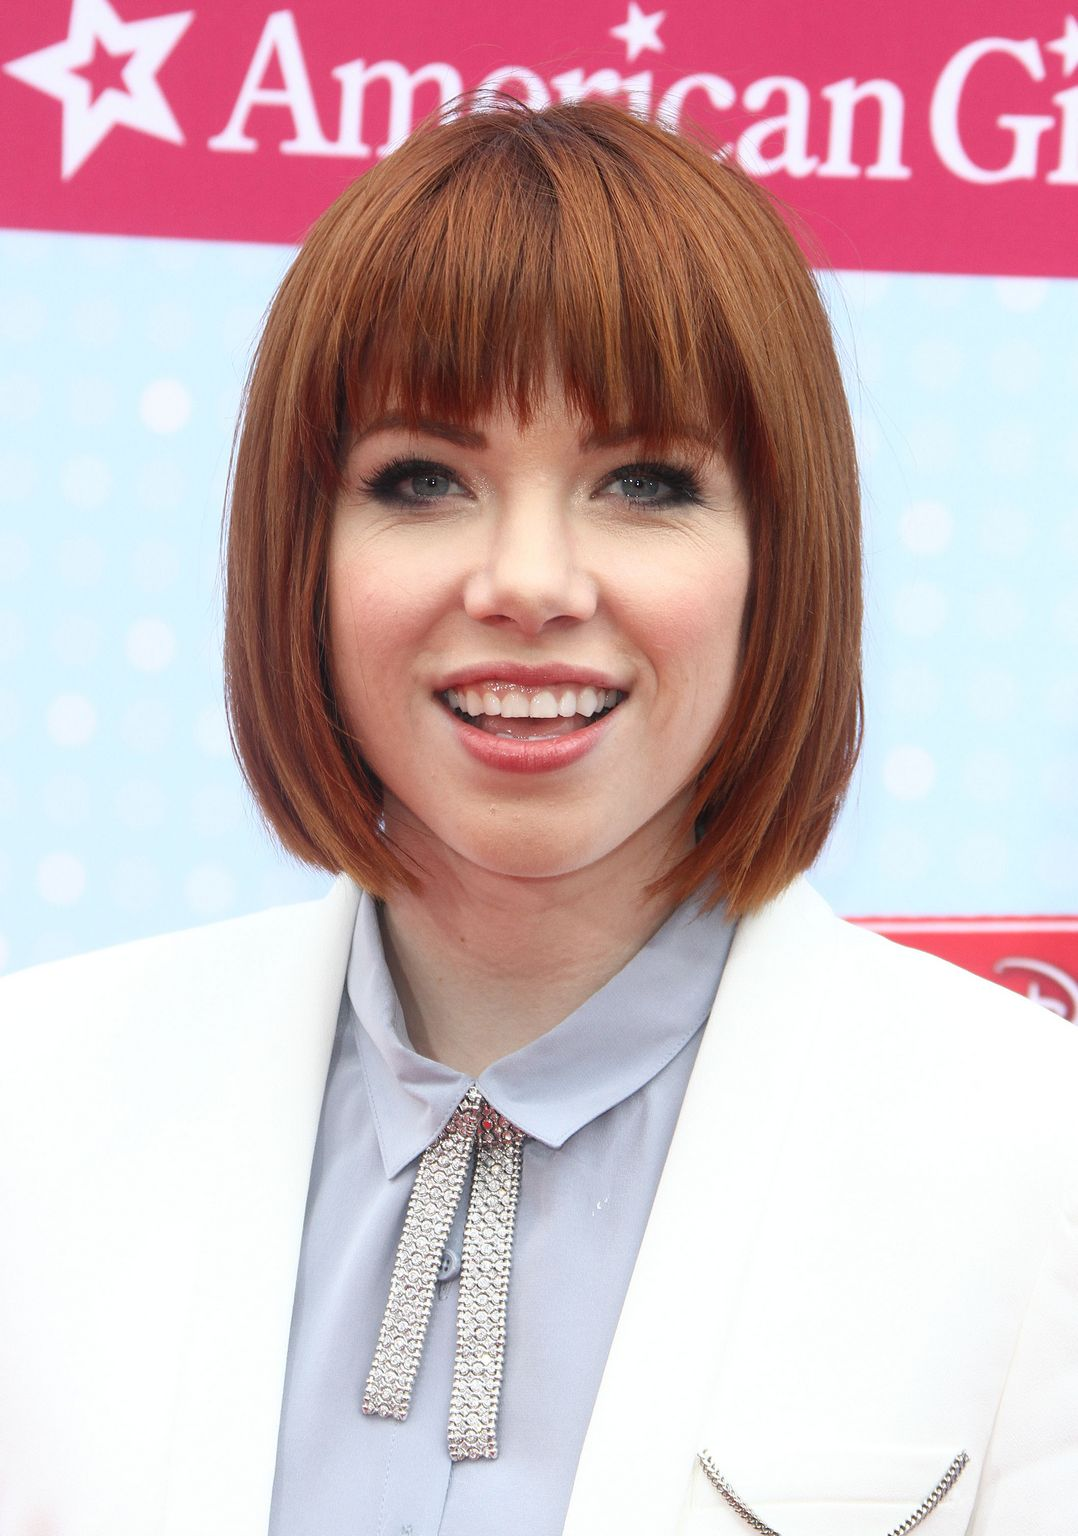 Carly Rae Jepsen at Radio Disney Music Awards-2